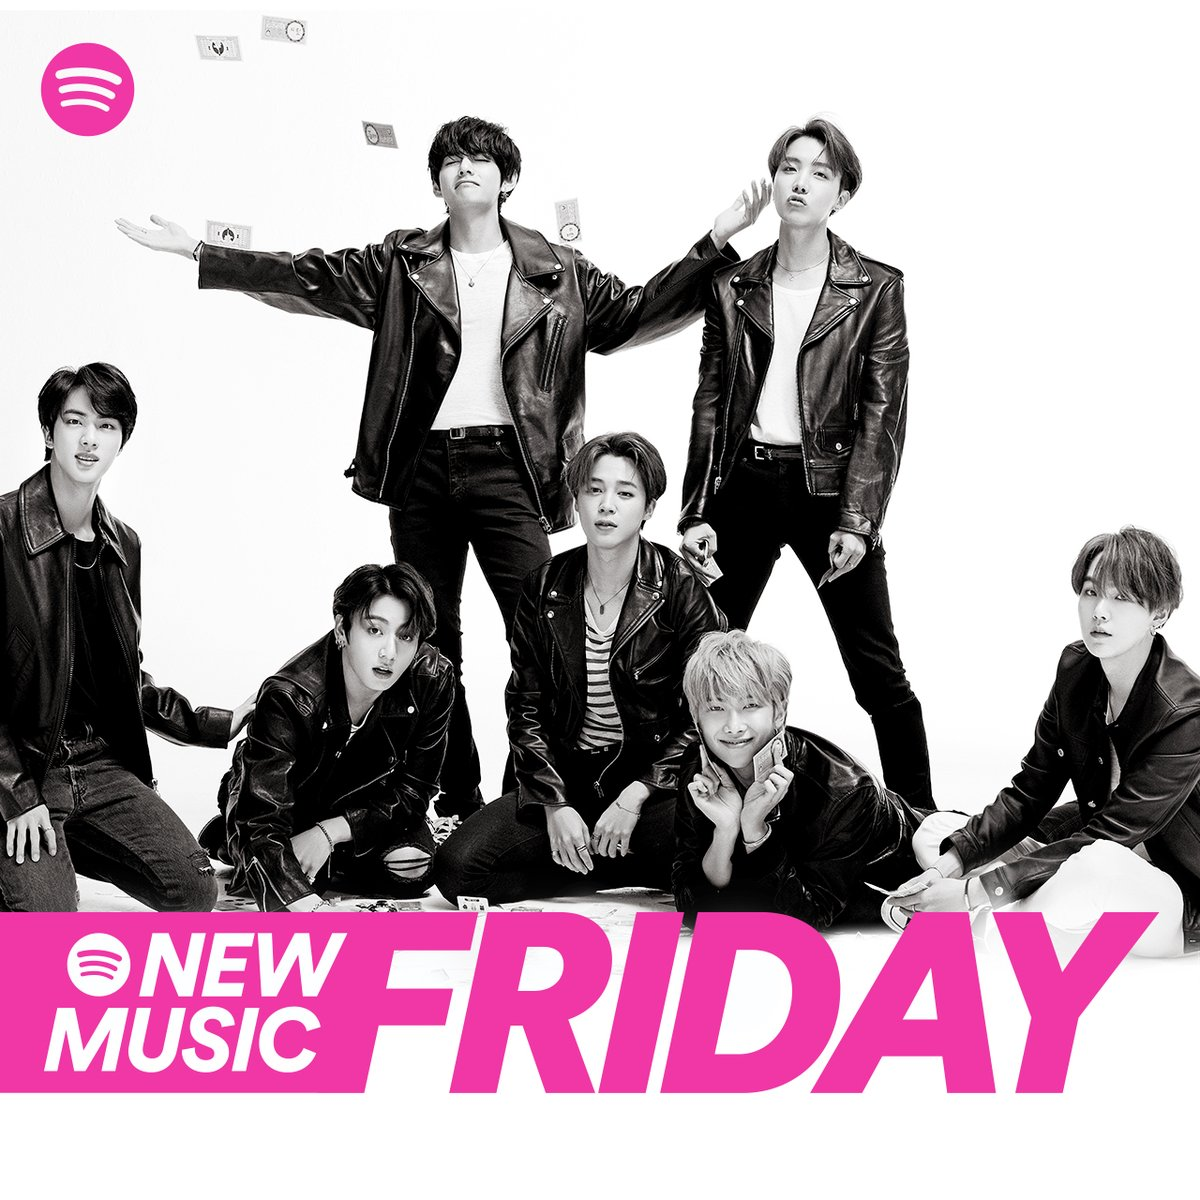 Say hello to the new look #NewMusicFriday 👋 Then say 안녕 to our first cover stars @BTS_twt 💜 #SpotifyxBTS